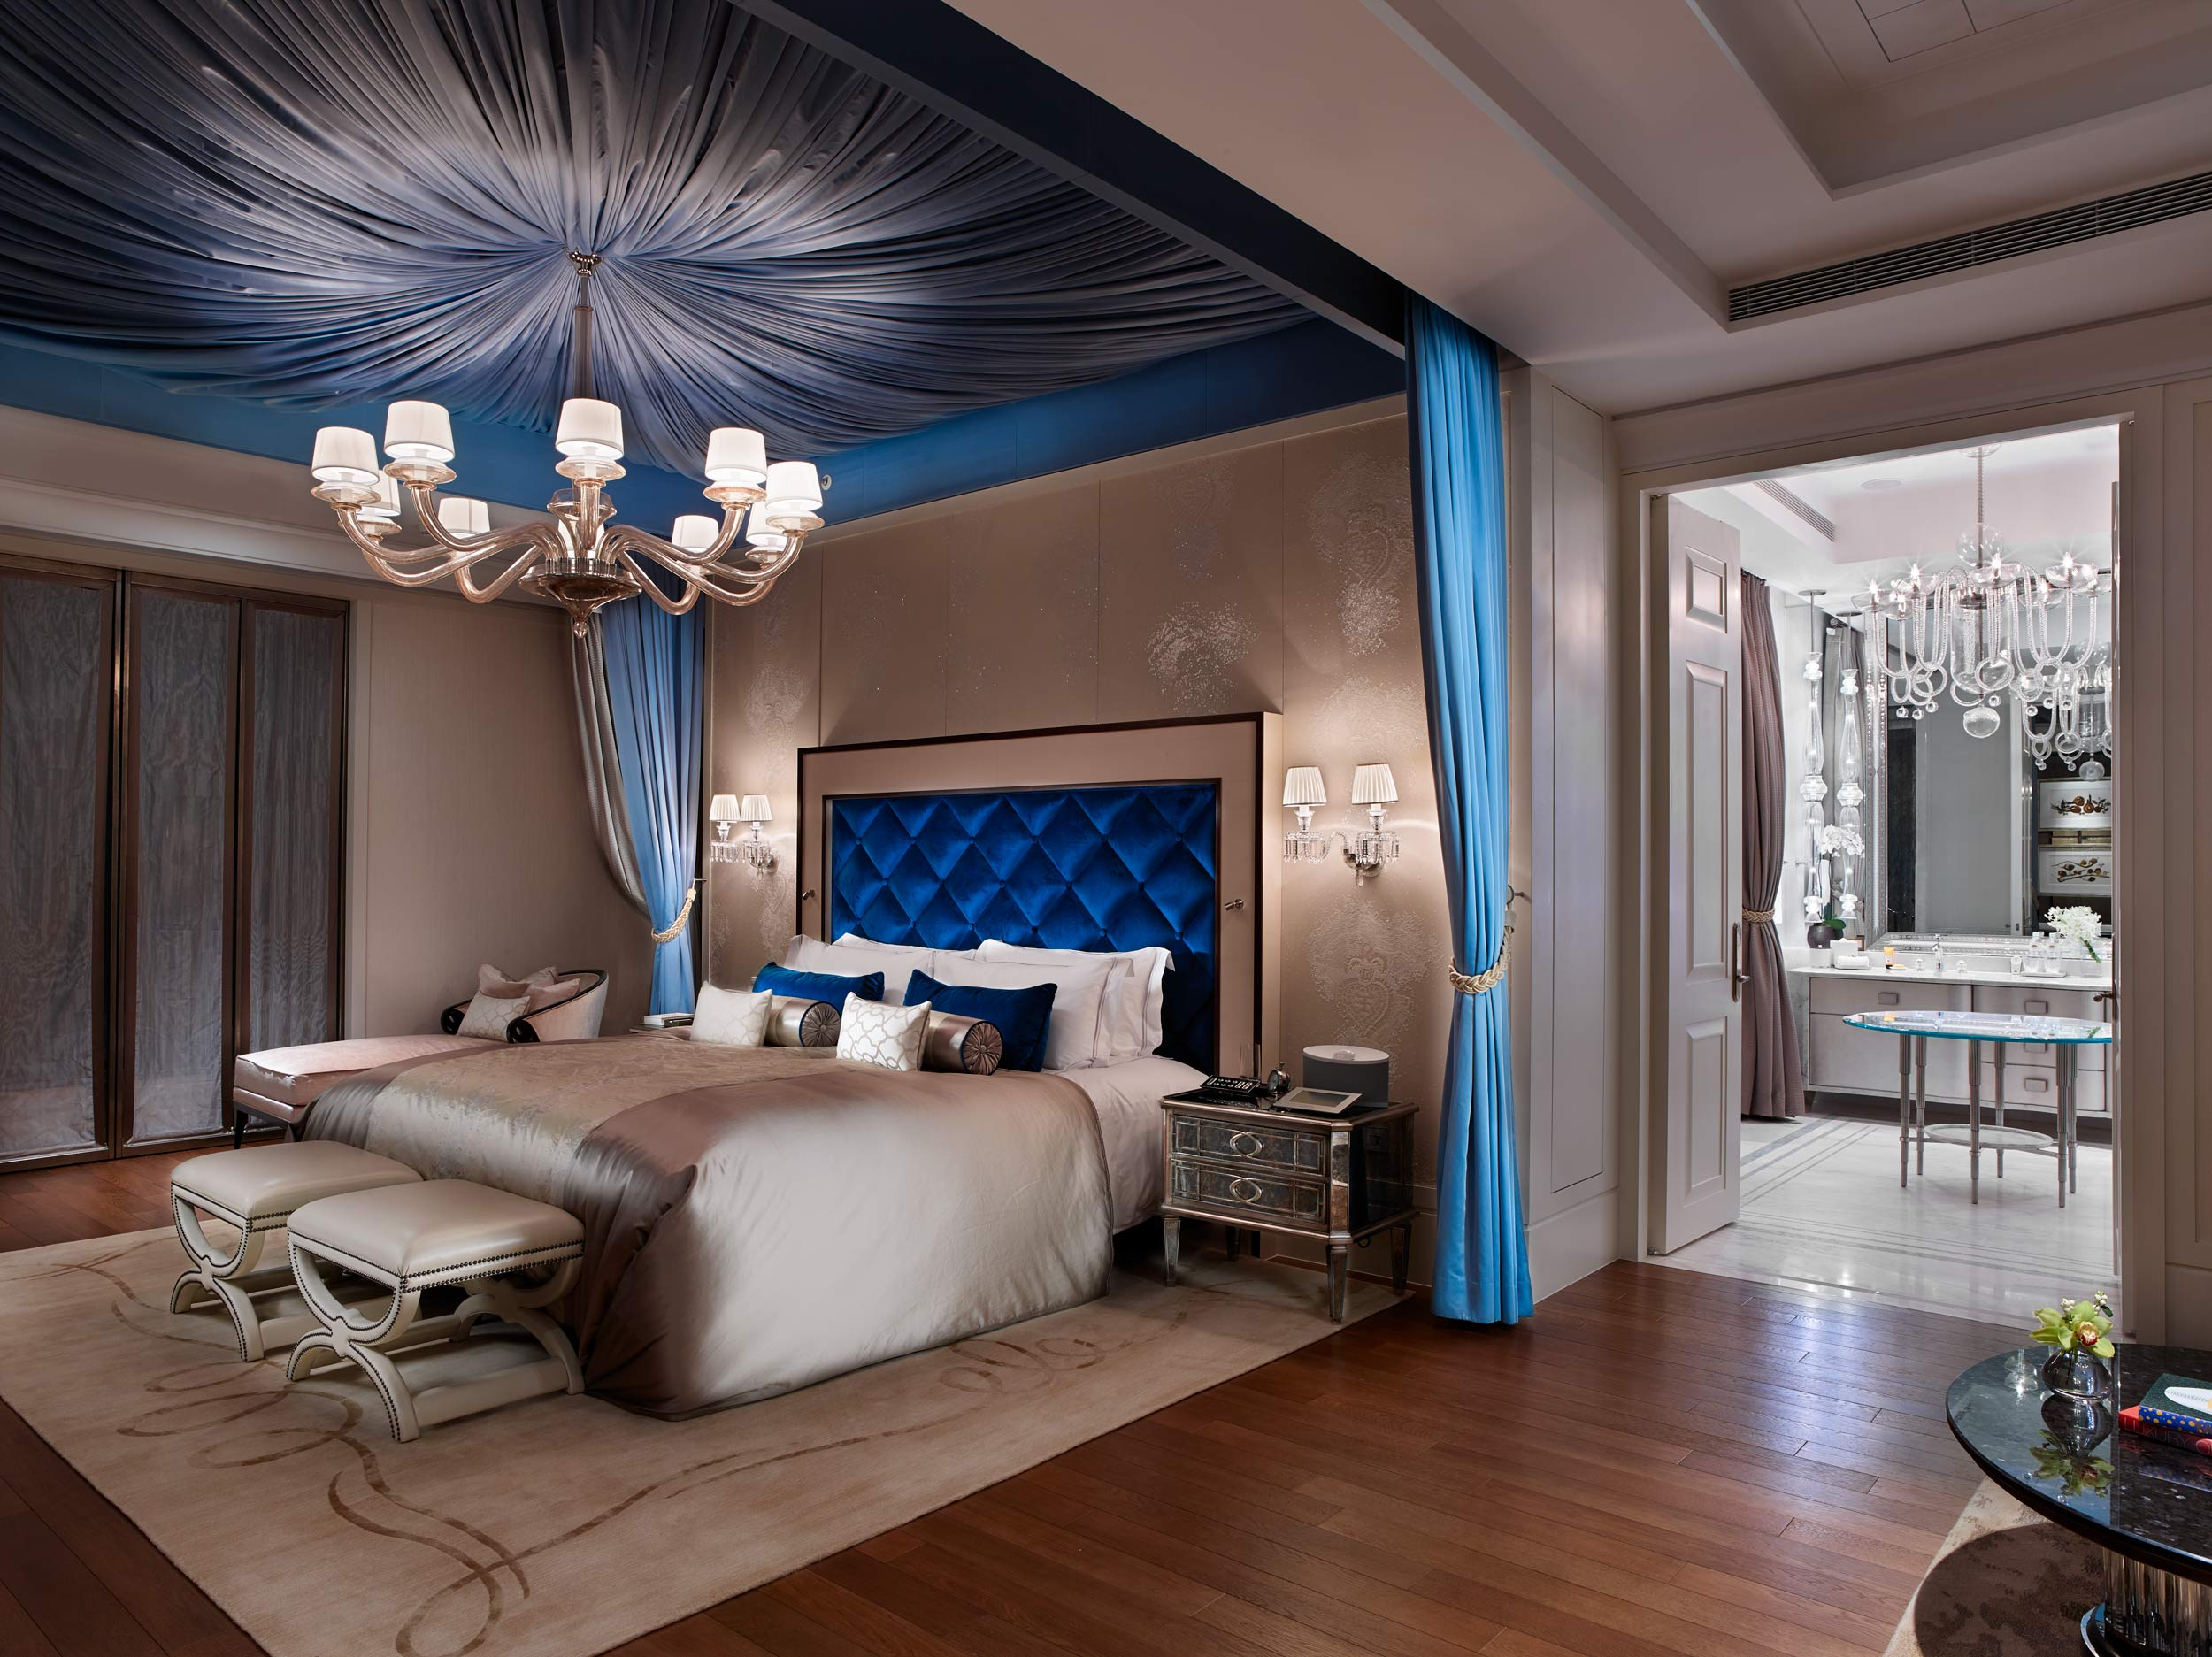 Mandarin-Oriental-Presidential-Suite-bedroom